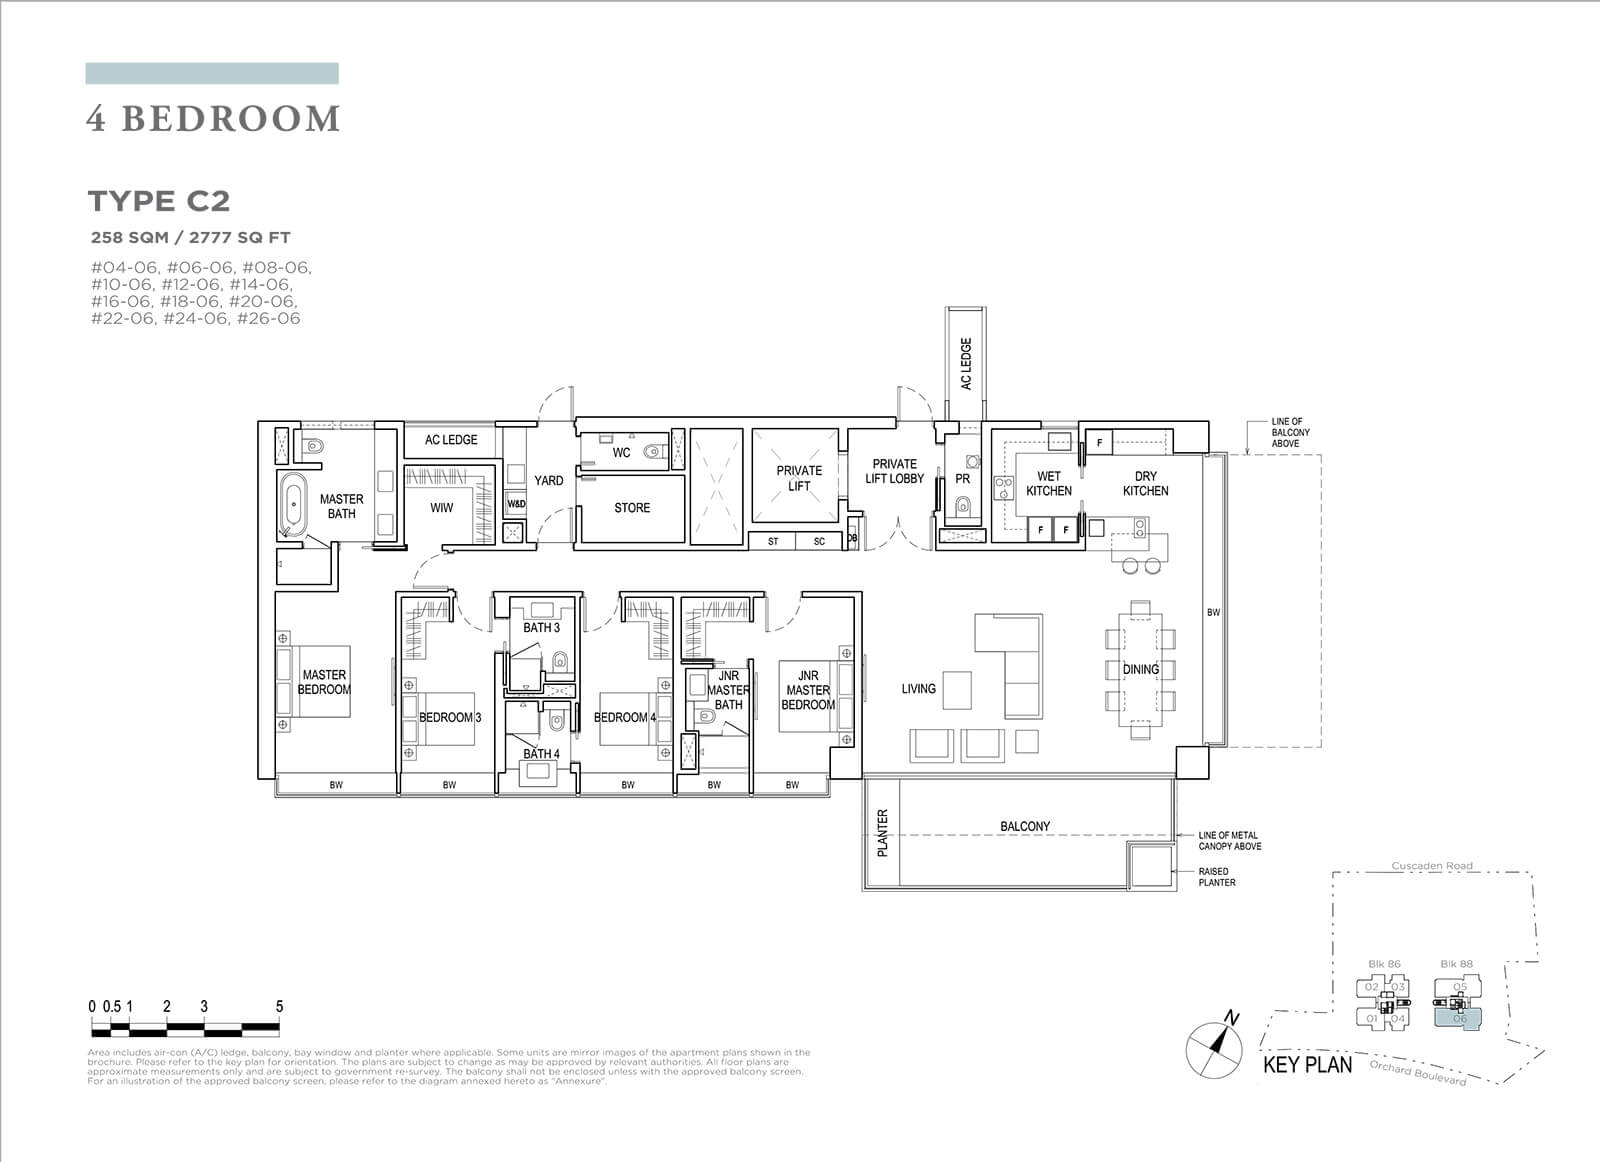 Boulevard 88 Floor Plan 4 Bedroom Type C2